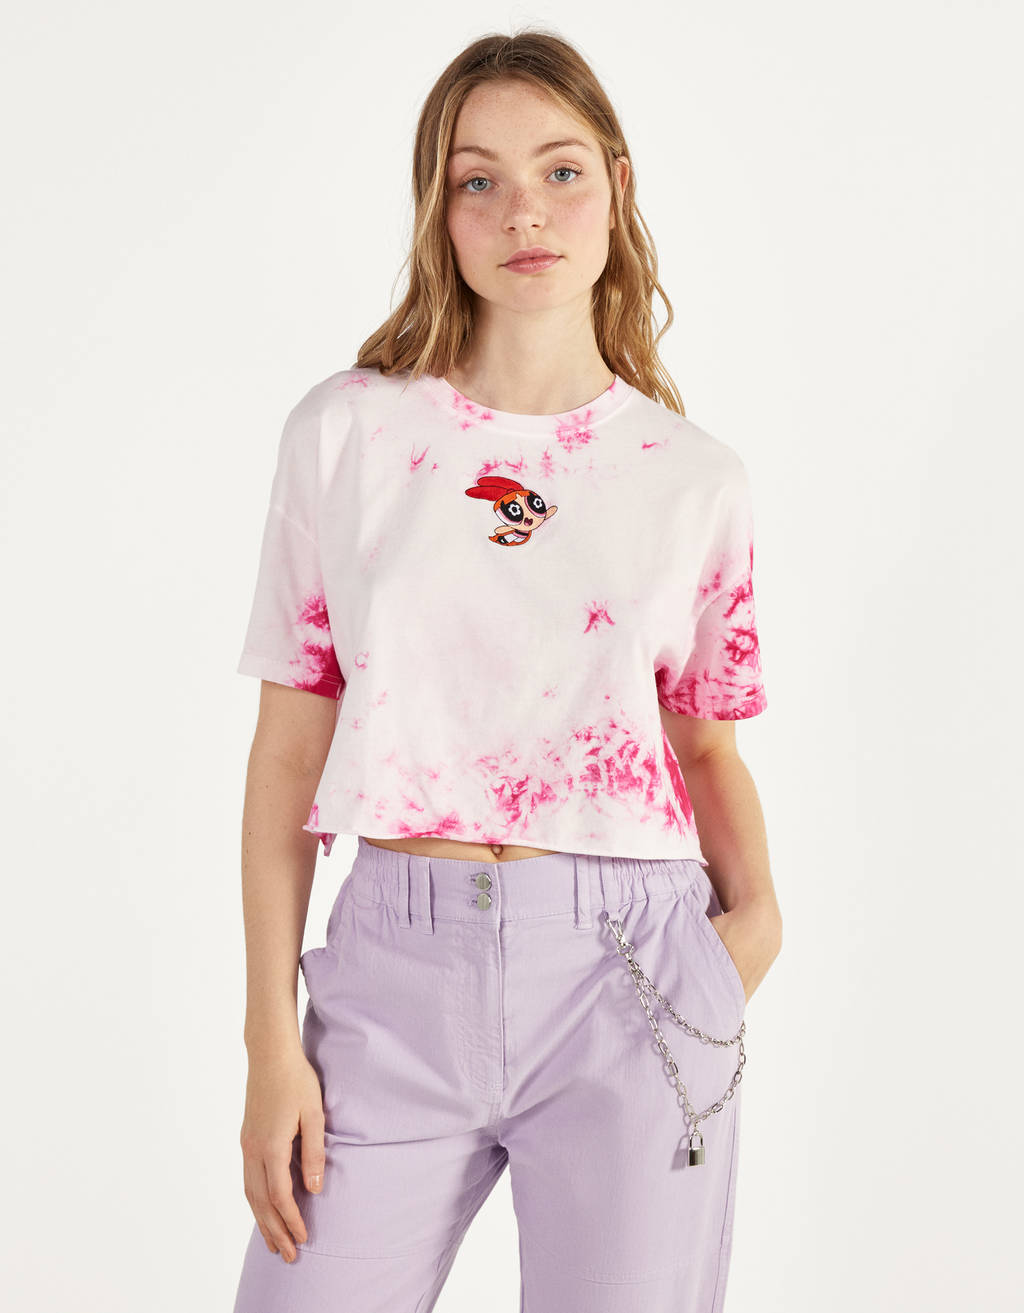 The Powerpuff Girls x Bershka tie-dye T-shirt